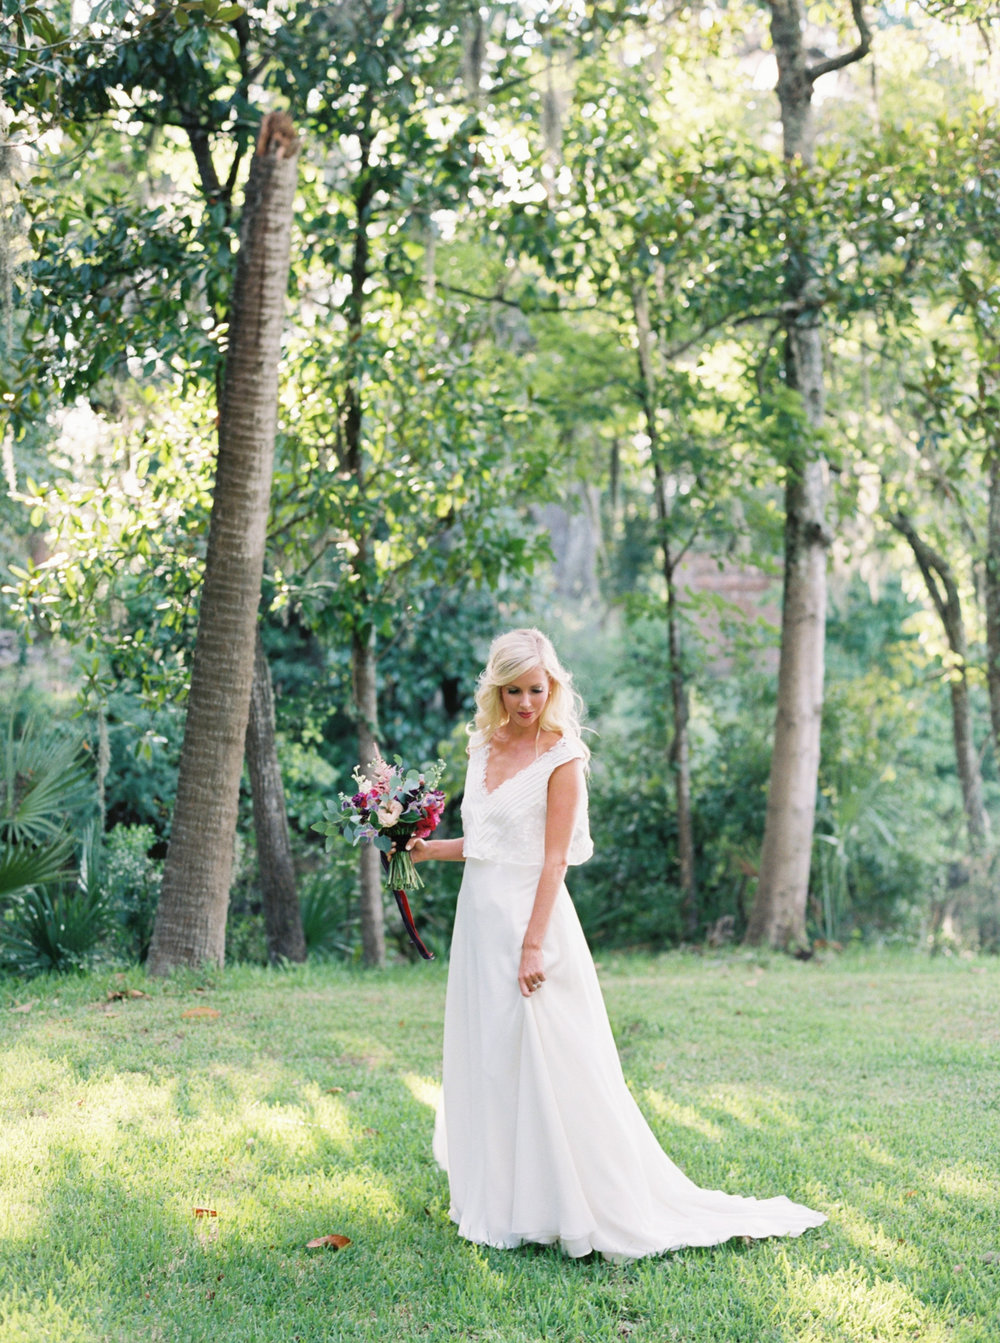 Charleston wedding dress designer - Emily Kotarski Bridal